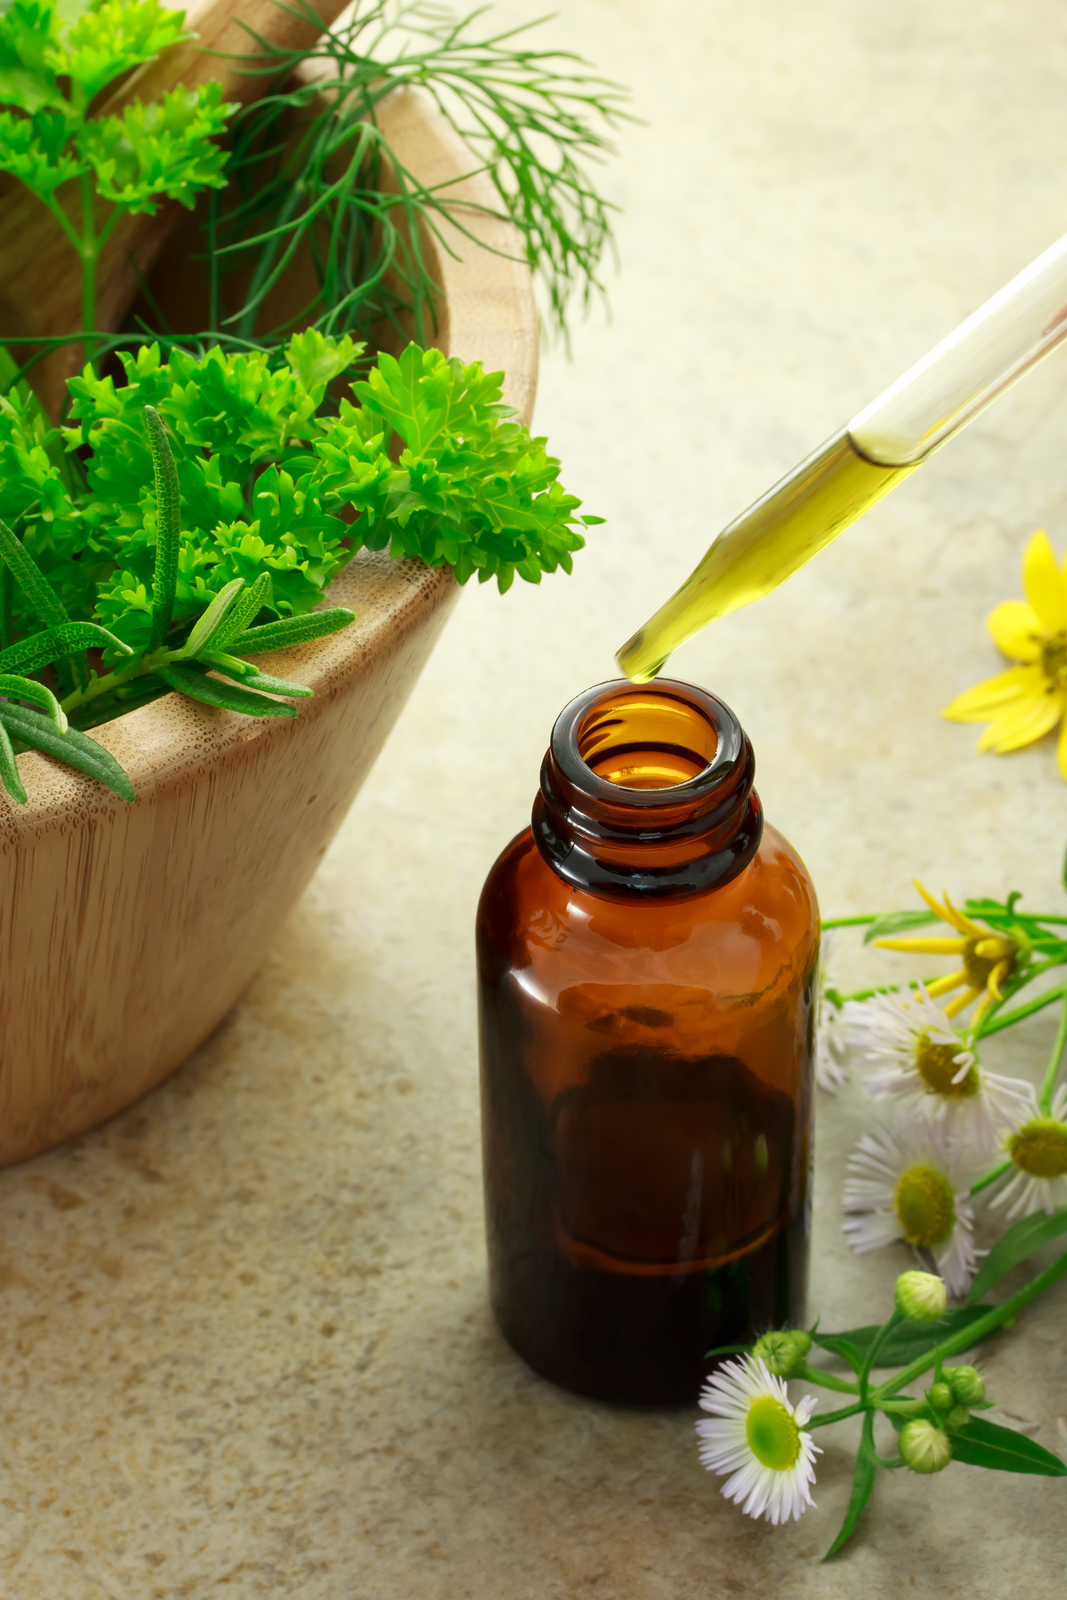 Botanical, herbs, allergies, asthma, natural treatments